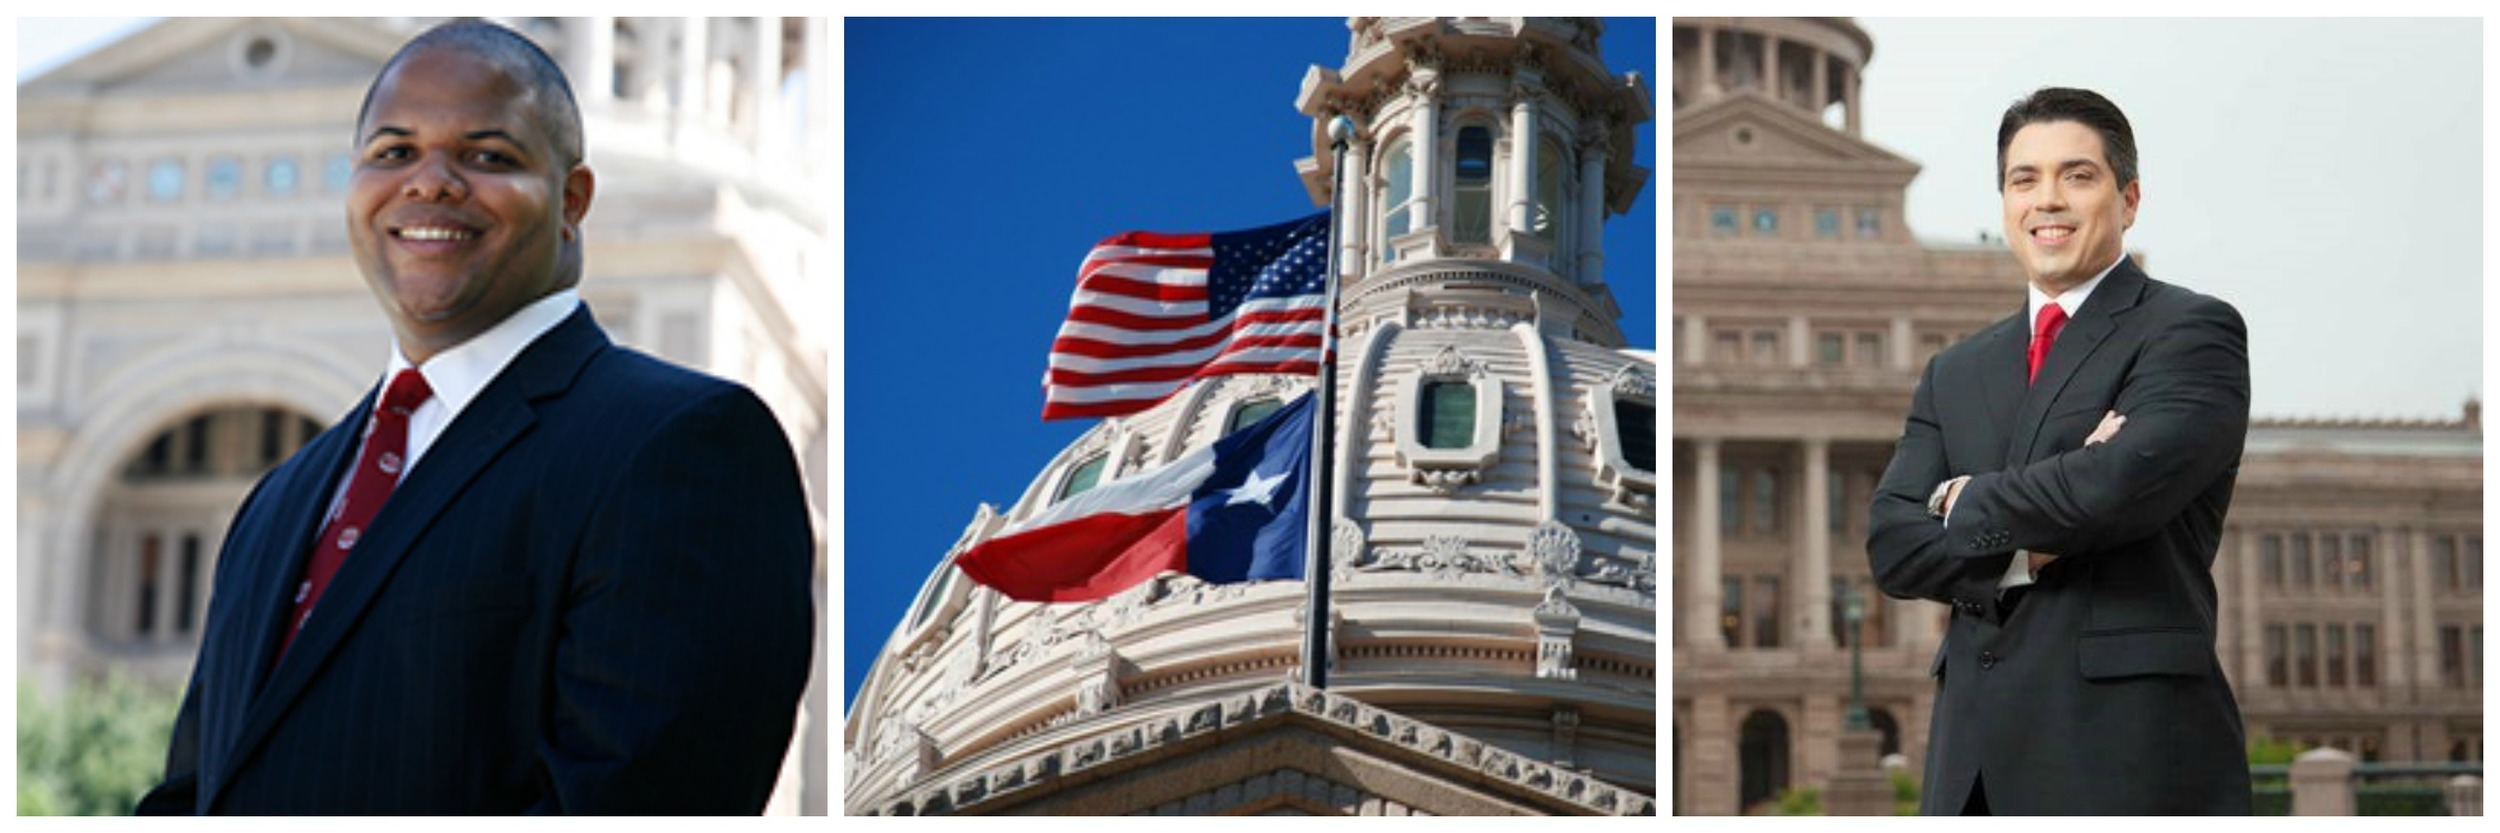 The Young Texans Legislative Caucus is led by Chair Eric Johnson (D-Dallas)and Vice ChairChris Paddie (R-Marshall).